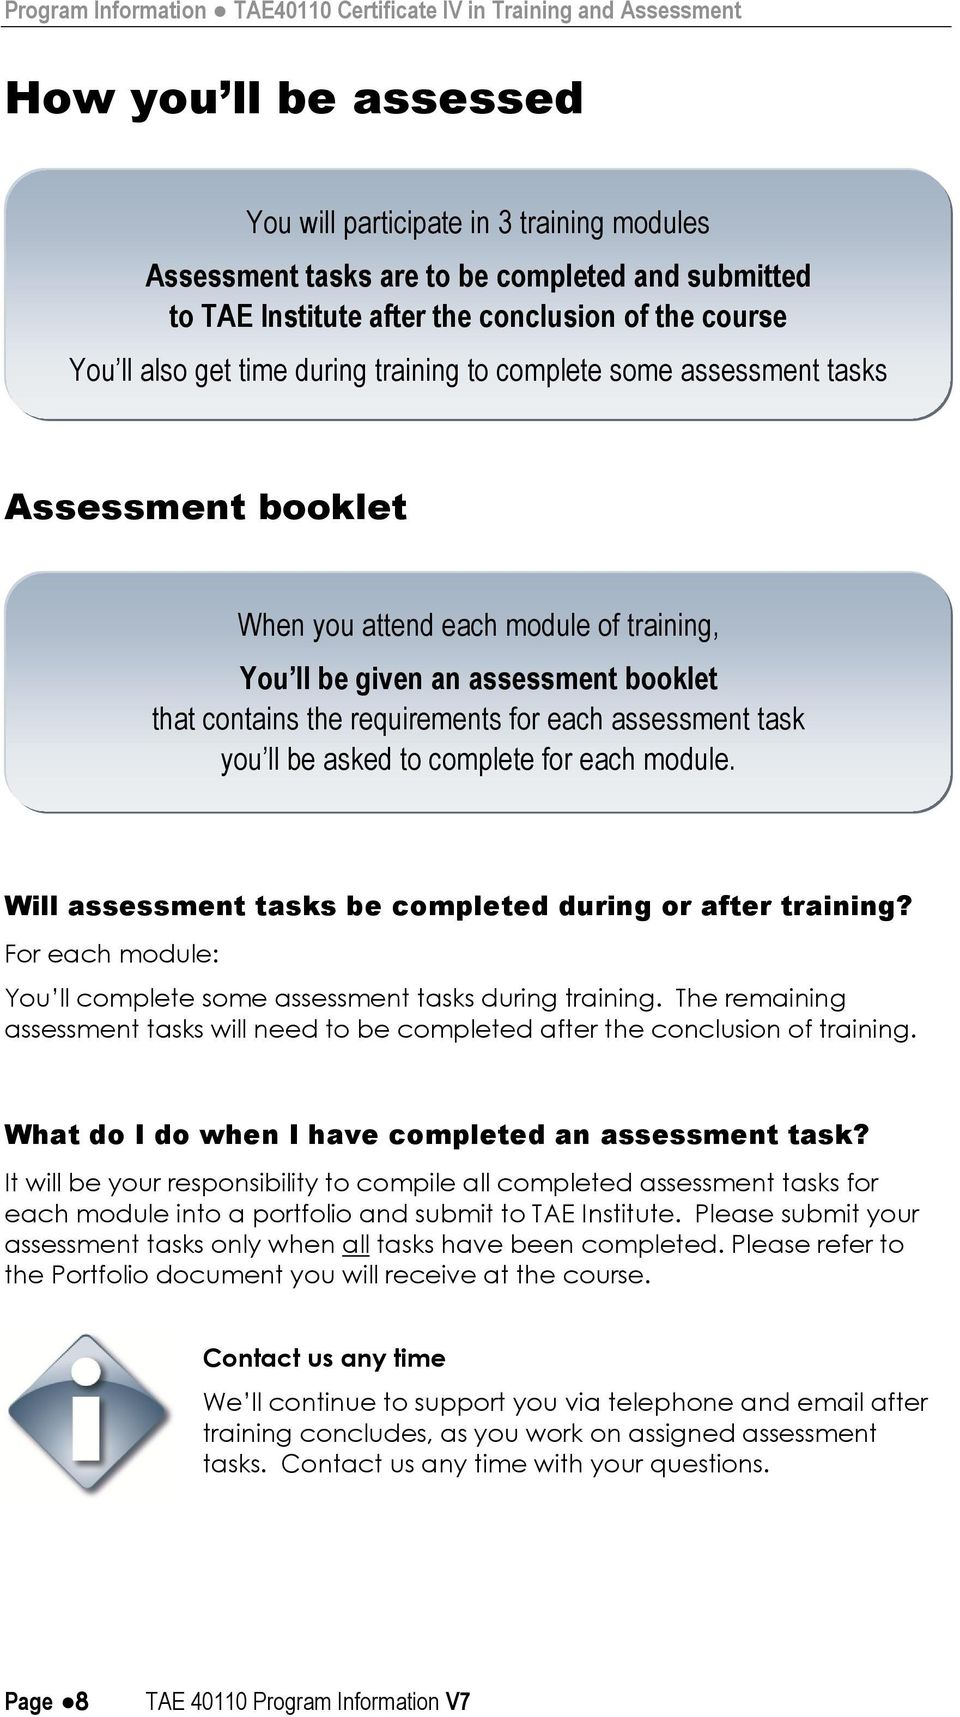 assessment booklet that contains the requirements for each assessment task you ll be asked to complete for each module. Will assessment tasks be completed during or after training?